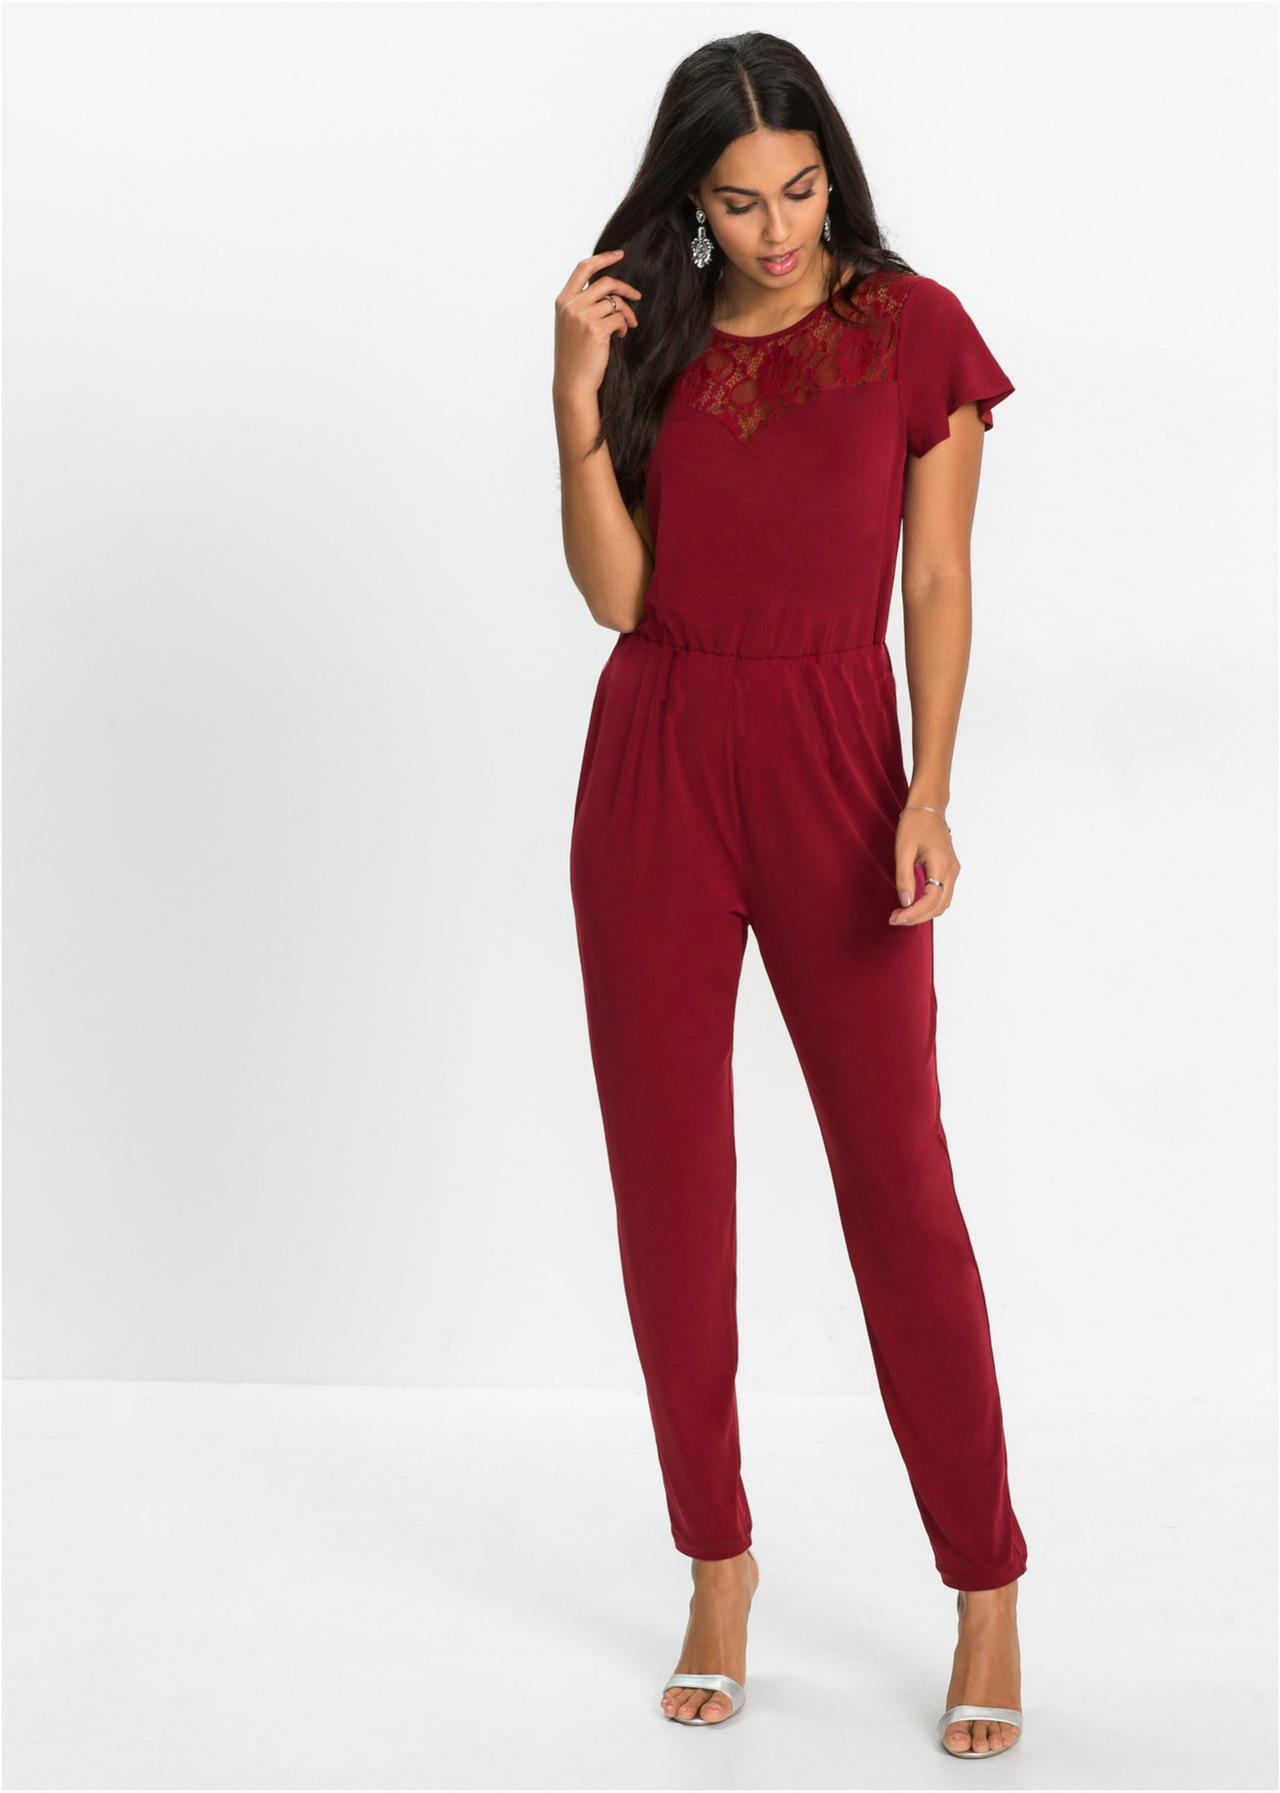 0fd54206b019 S-2XL work office formal jumpsuit casual leisure spring autumn jumpsuit  long pant trousers jumpsuit red s  Product No  636049. Item specifics   Brand